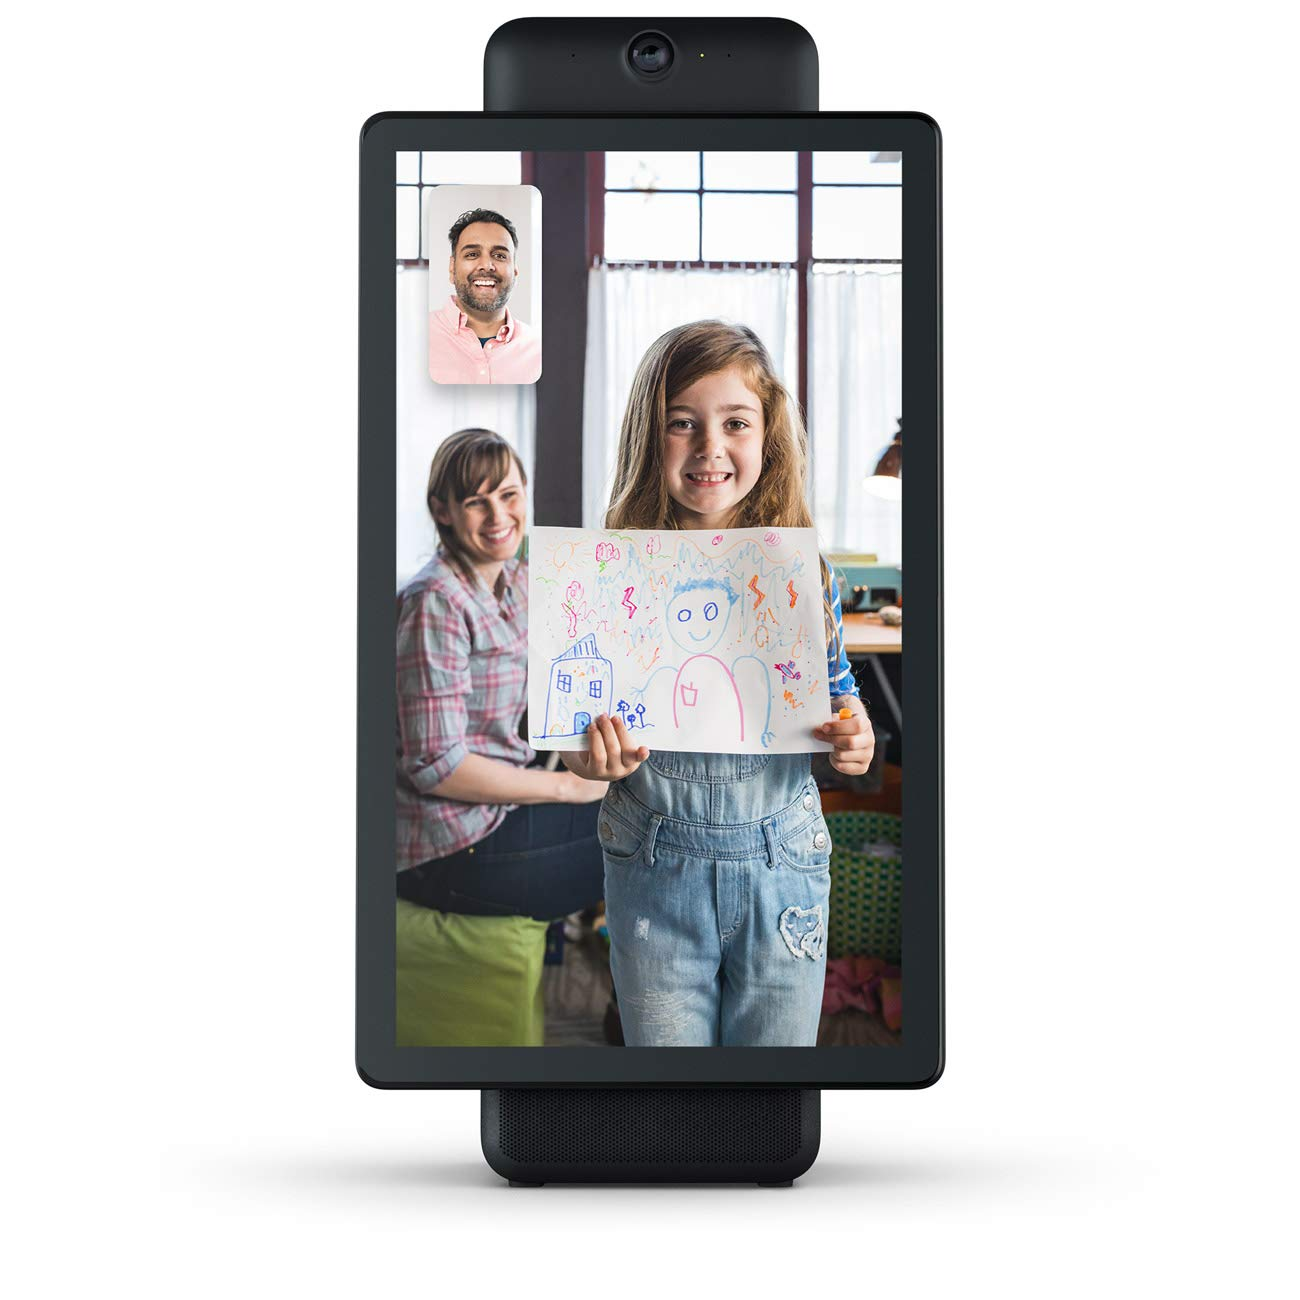 Portal Plus from Facebook. Smart, Hands-Free Video Calling with Alexa Built-in by Facebook